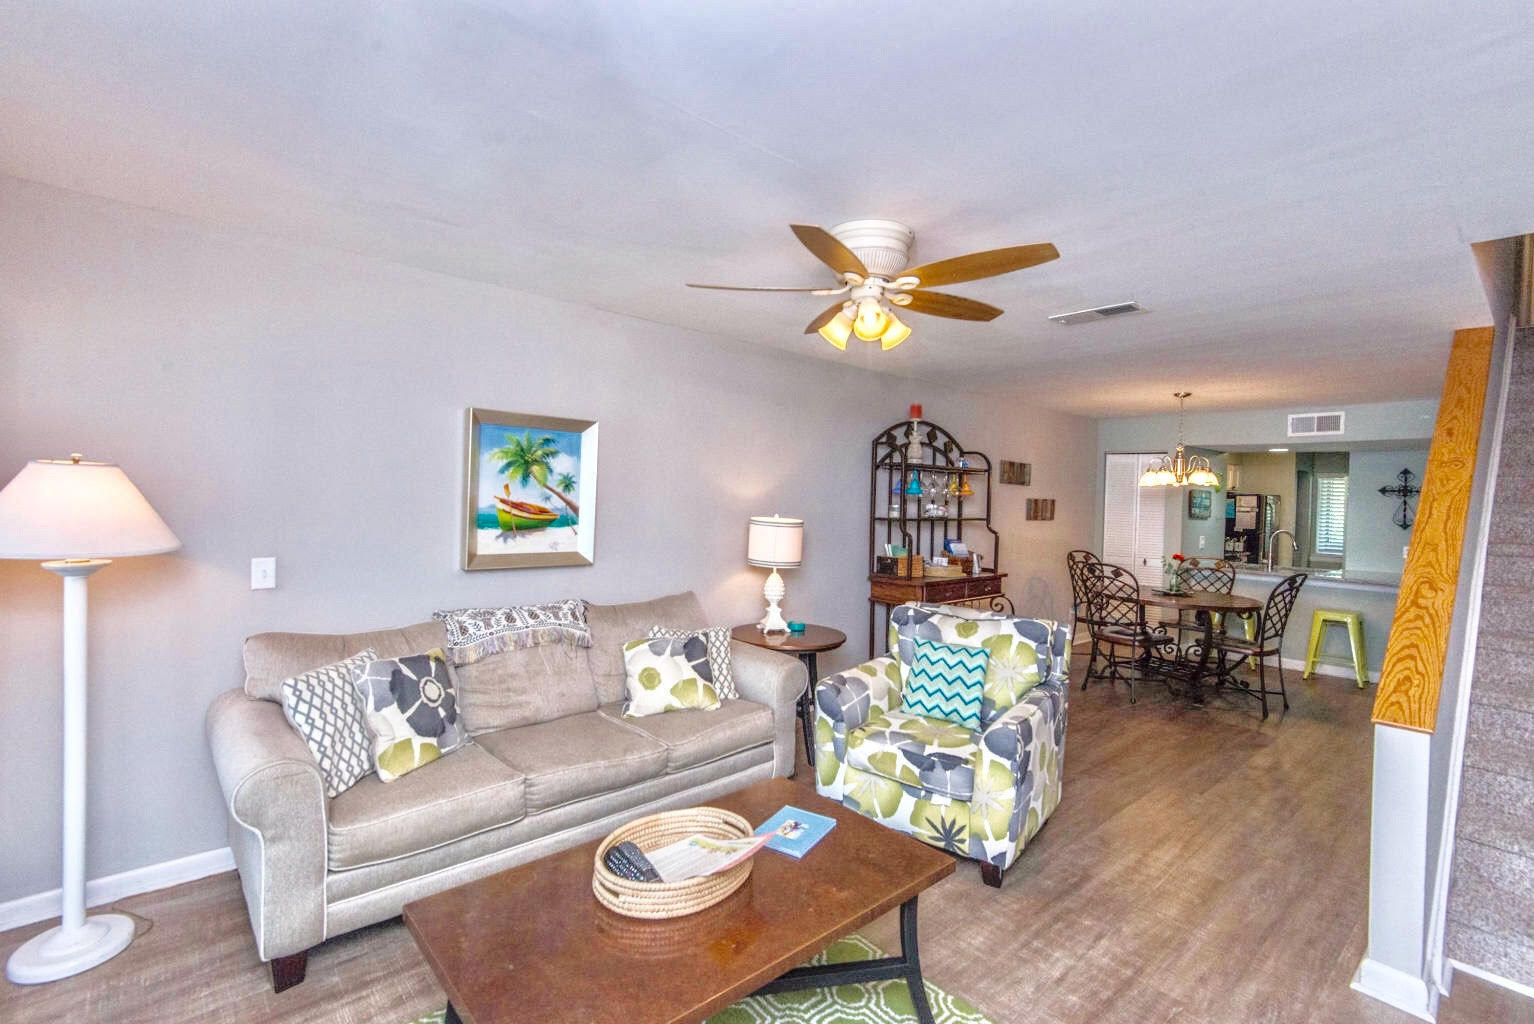 Mariners Cay Homes For Sale - 42 Mariners Cay, Folly Beach, SC - 8